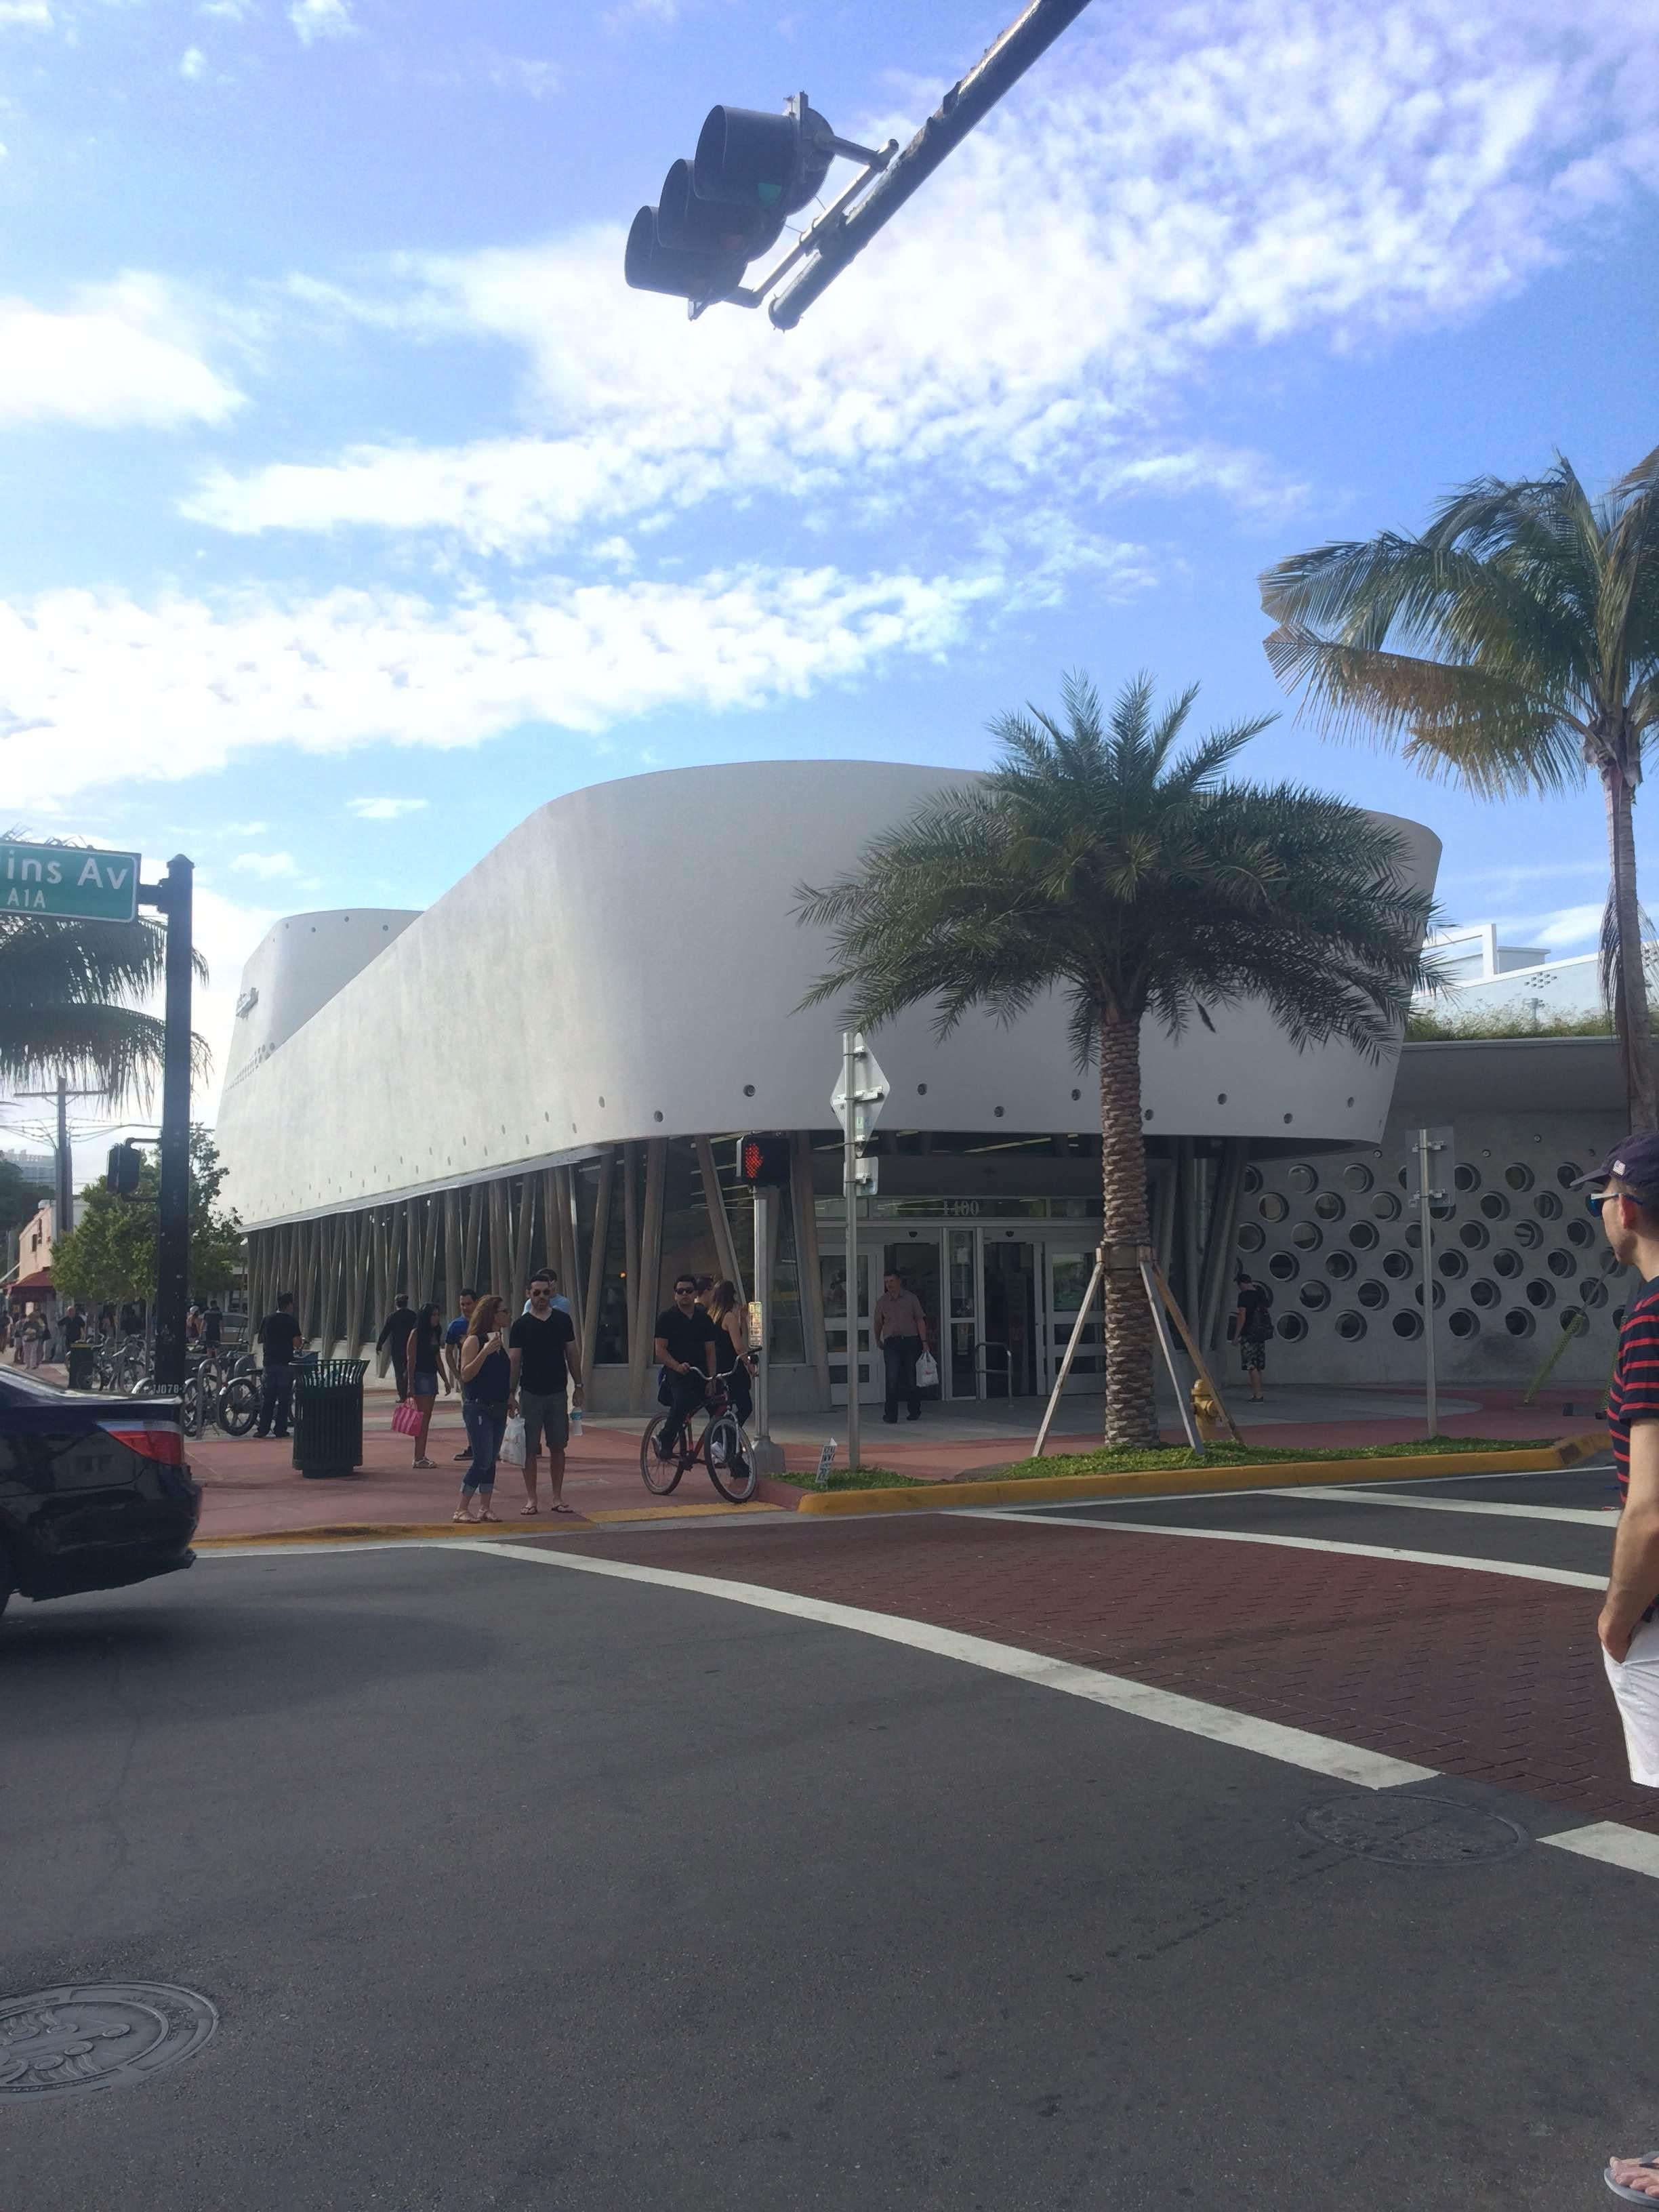 Edificio deportivo en South Beach